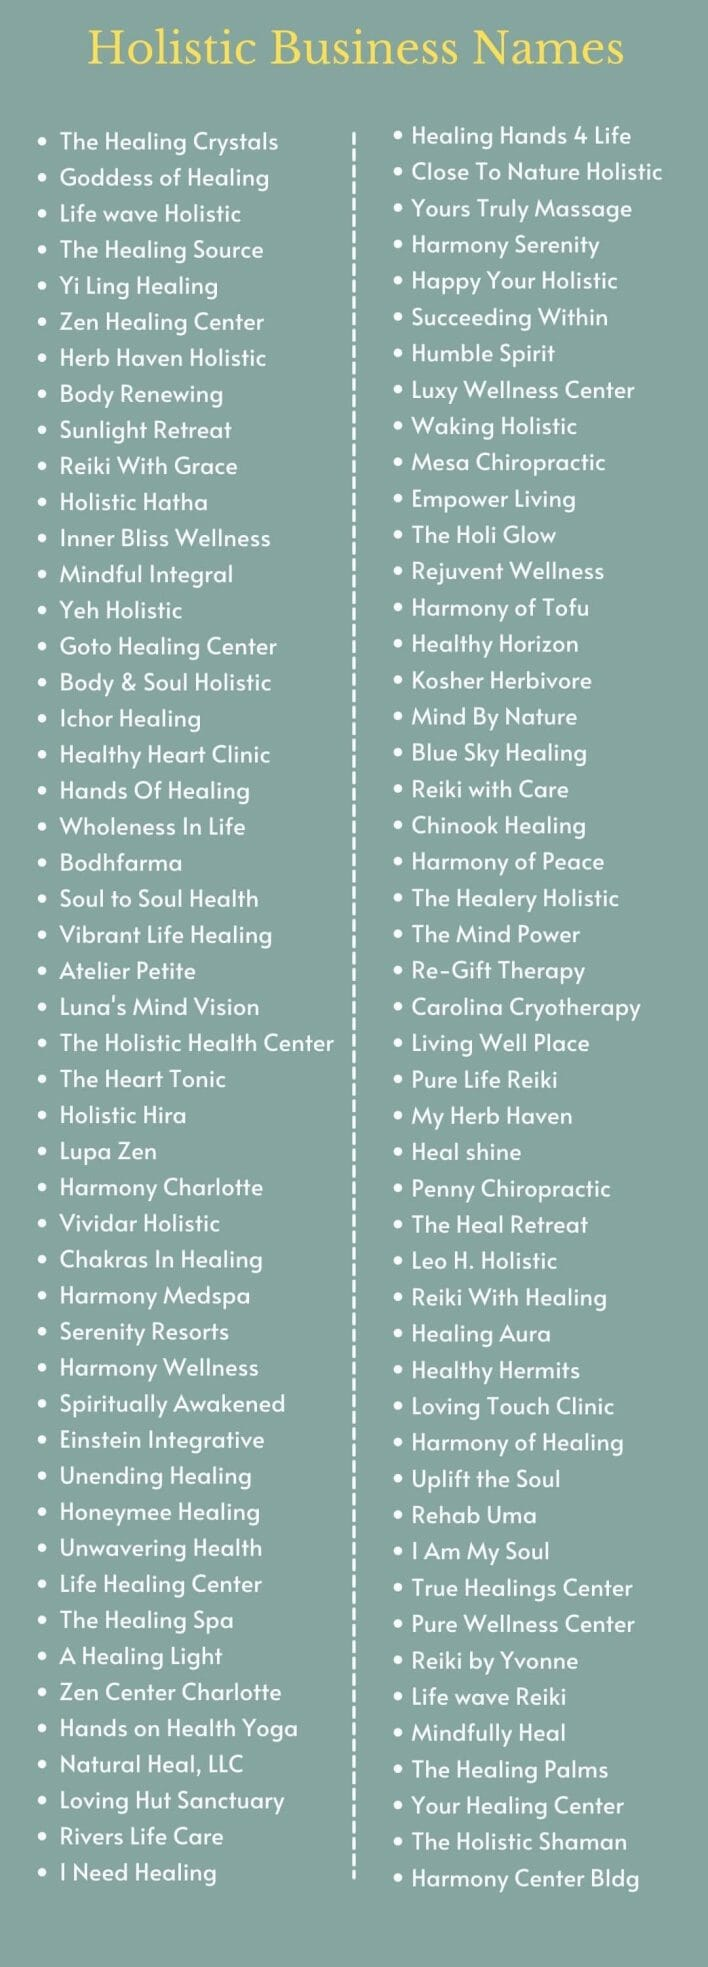 Holistic Business Names: Infographic